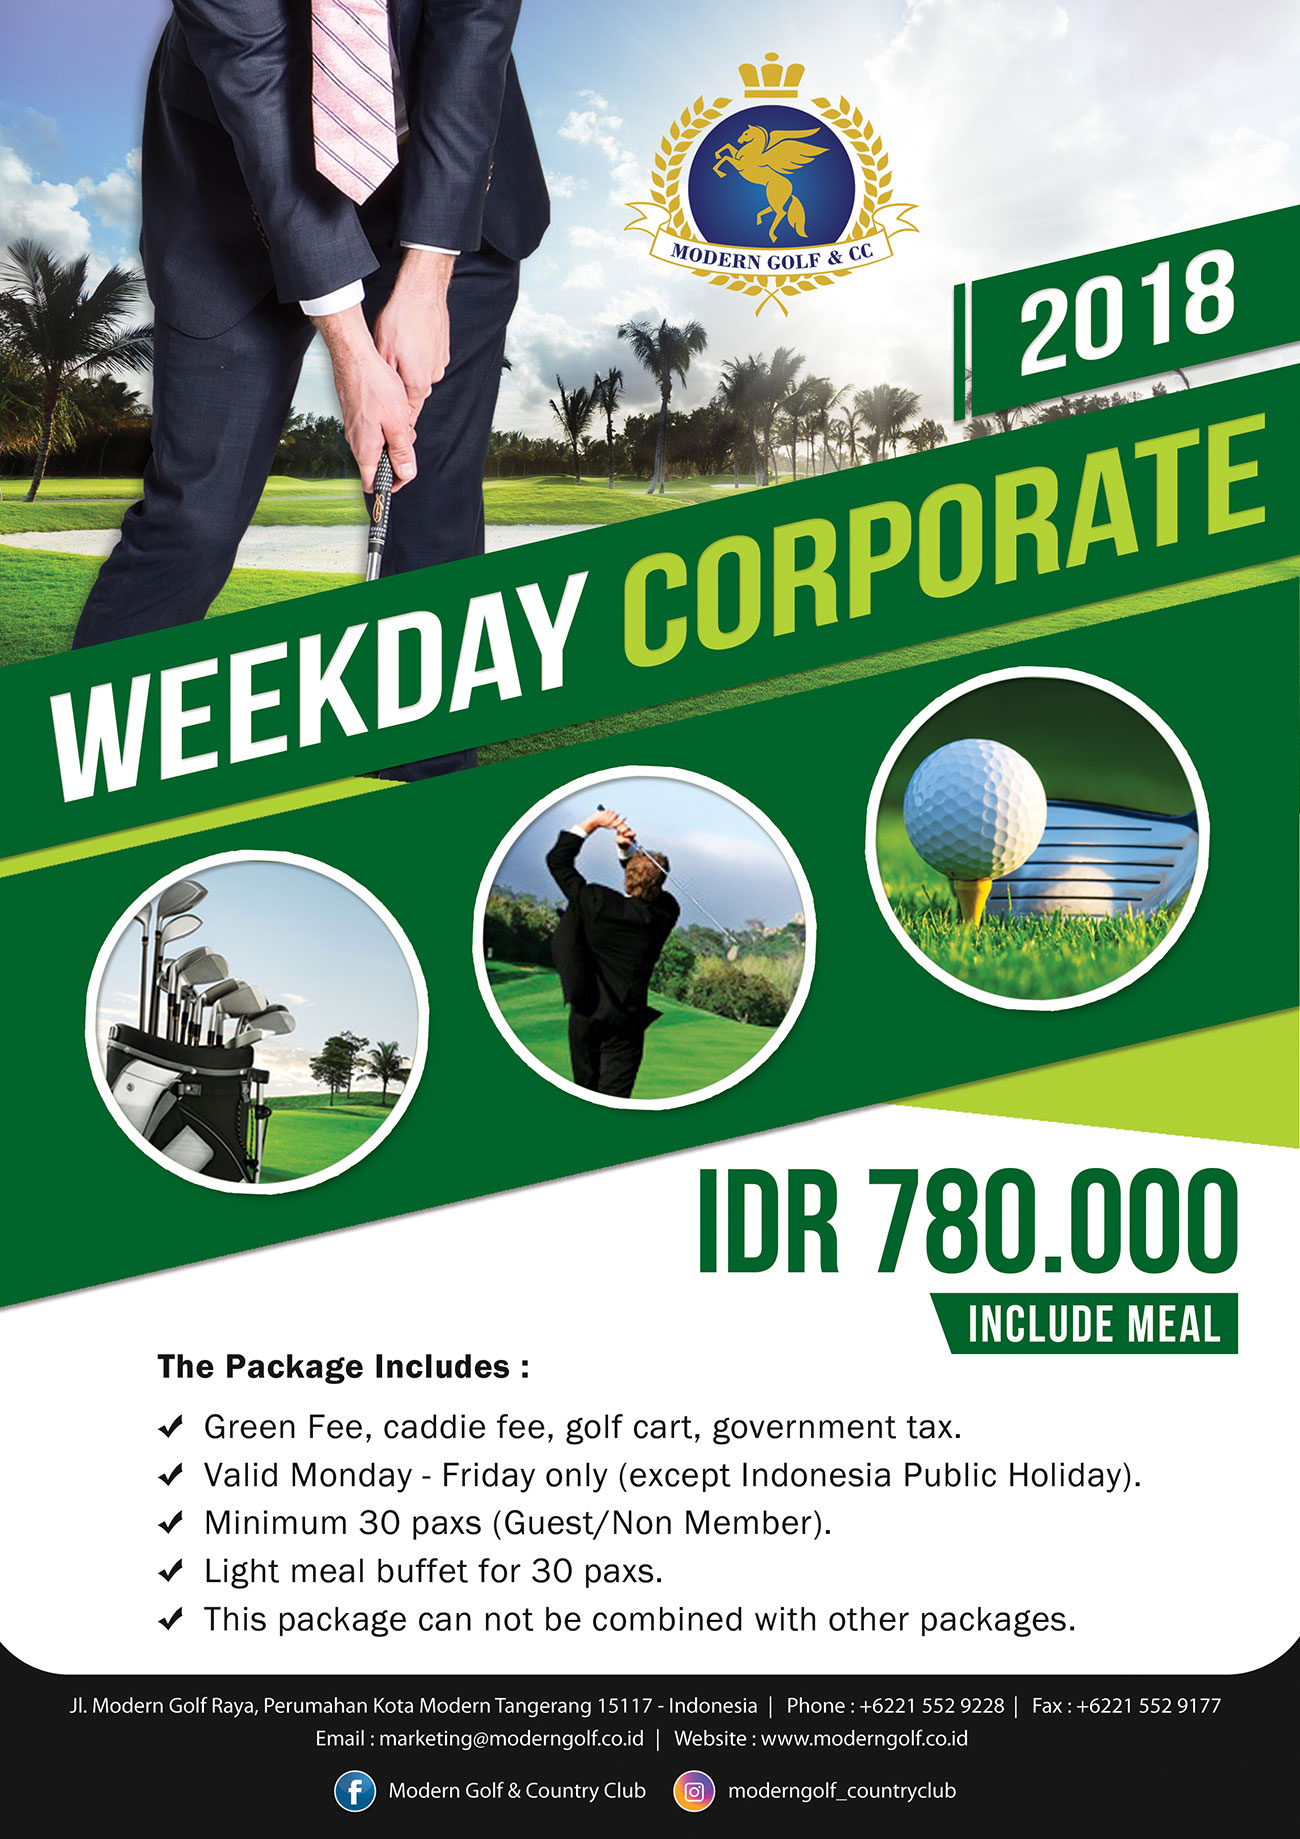 Weekday Corporate 2018